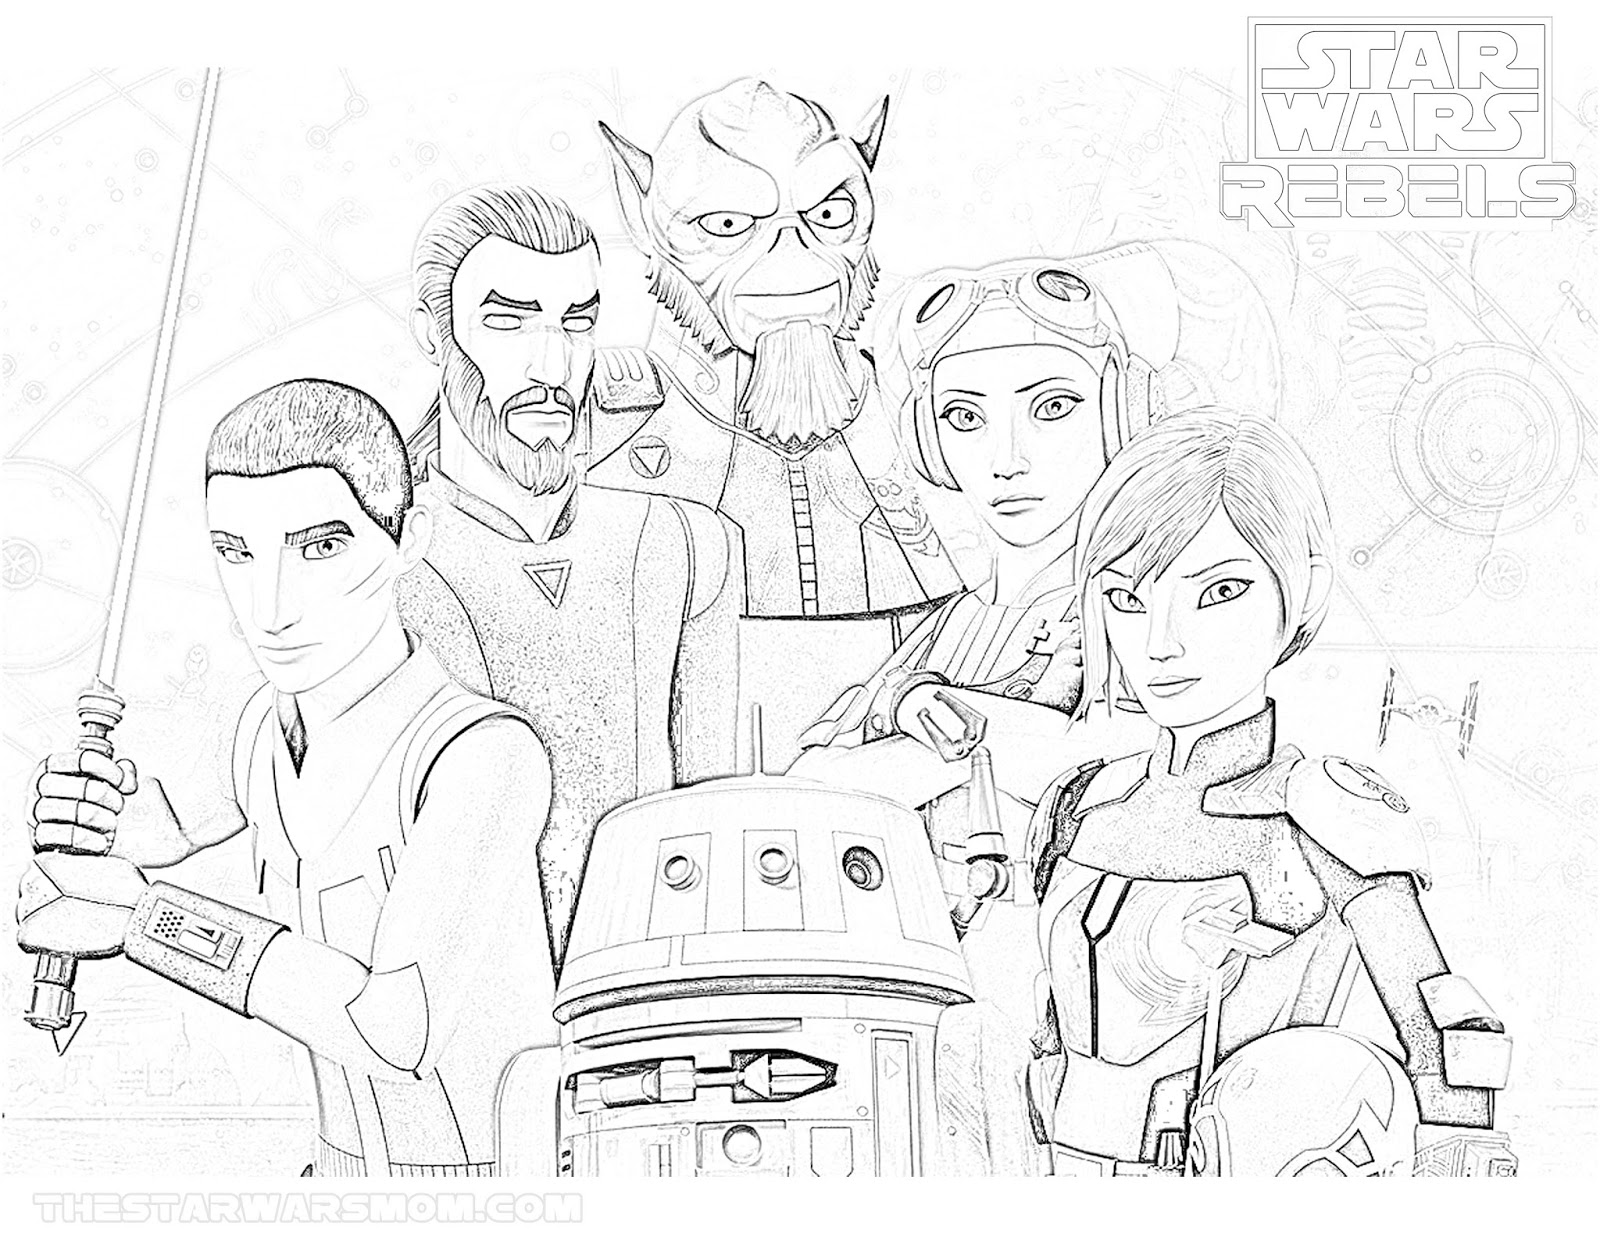 Star Wars Rebels Season 4 Coloring